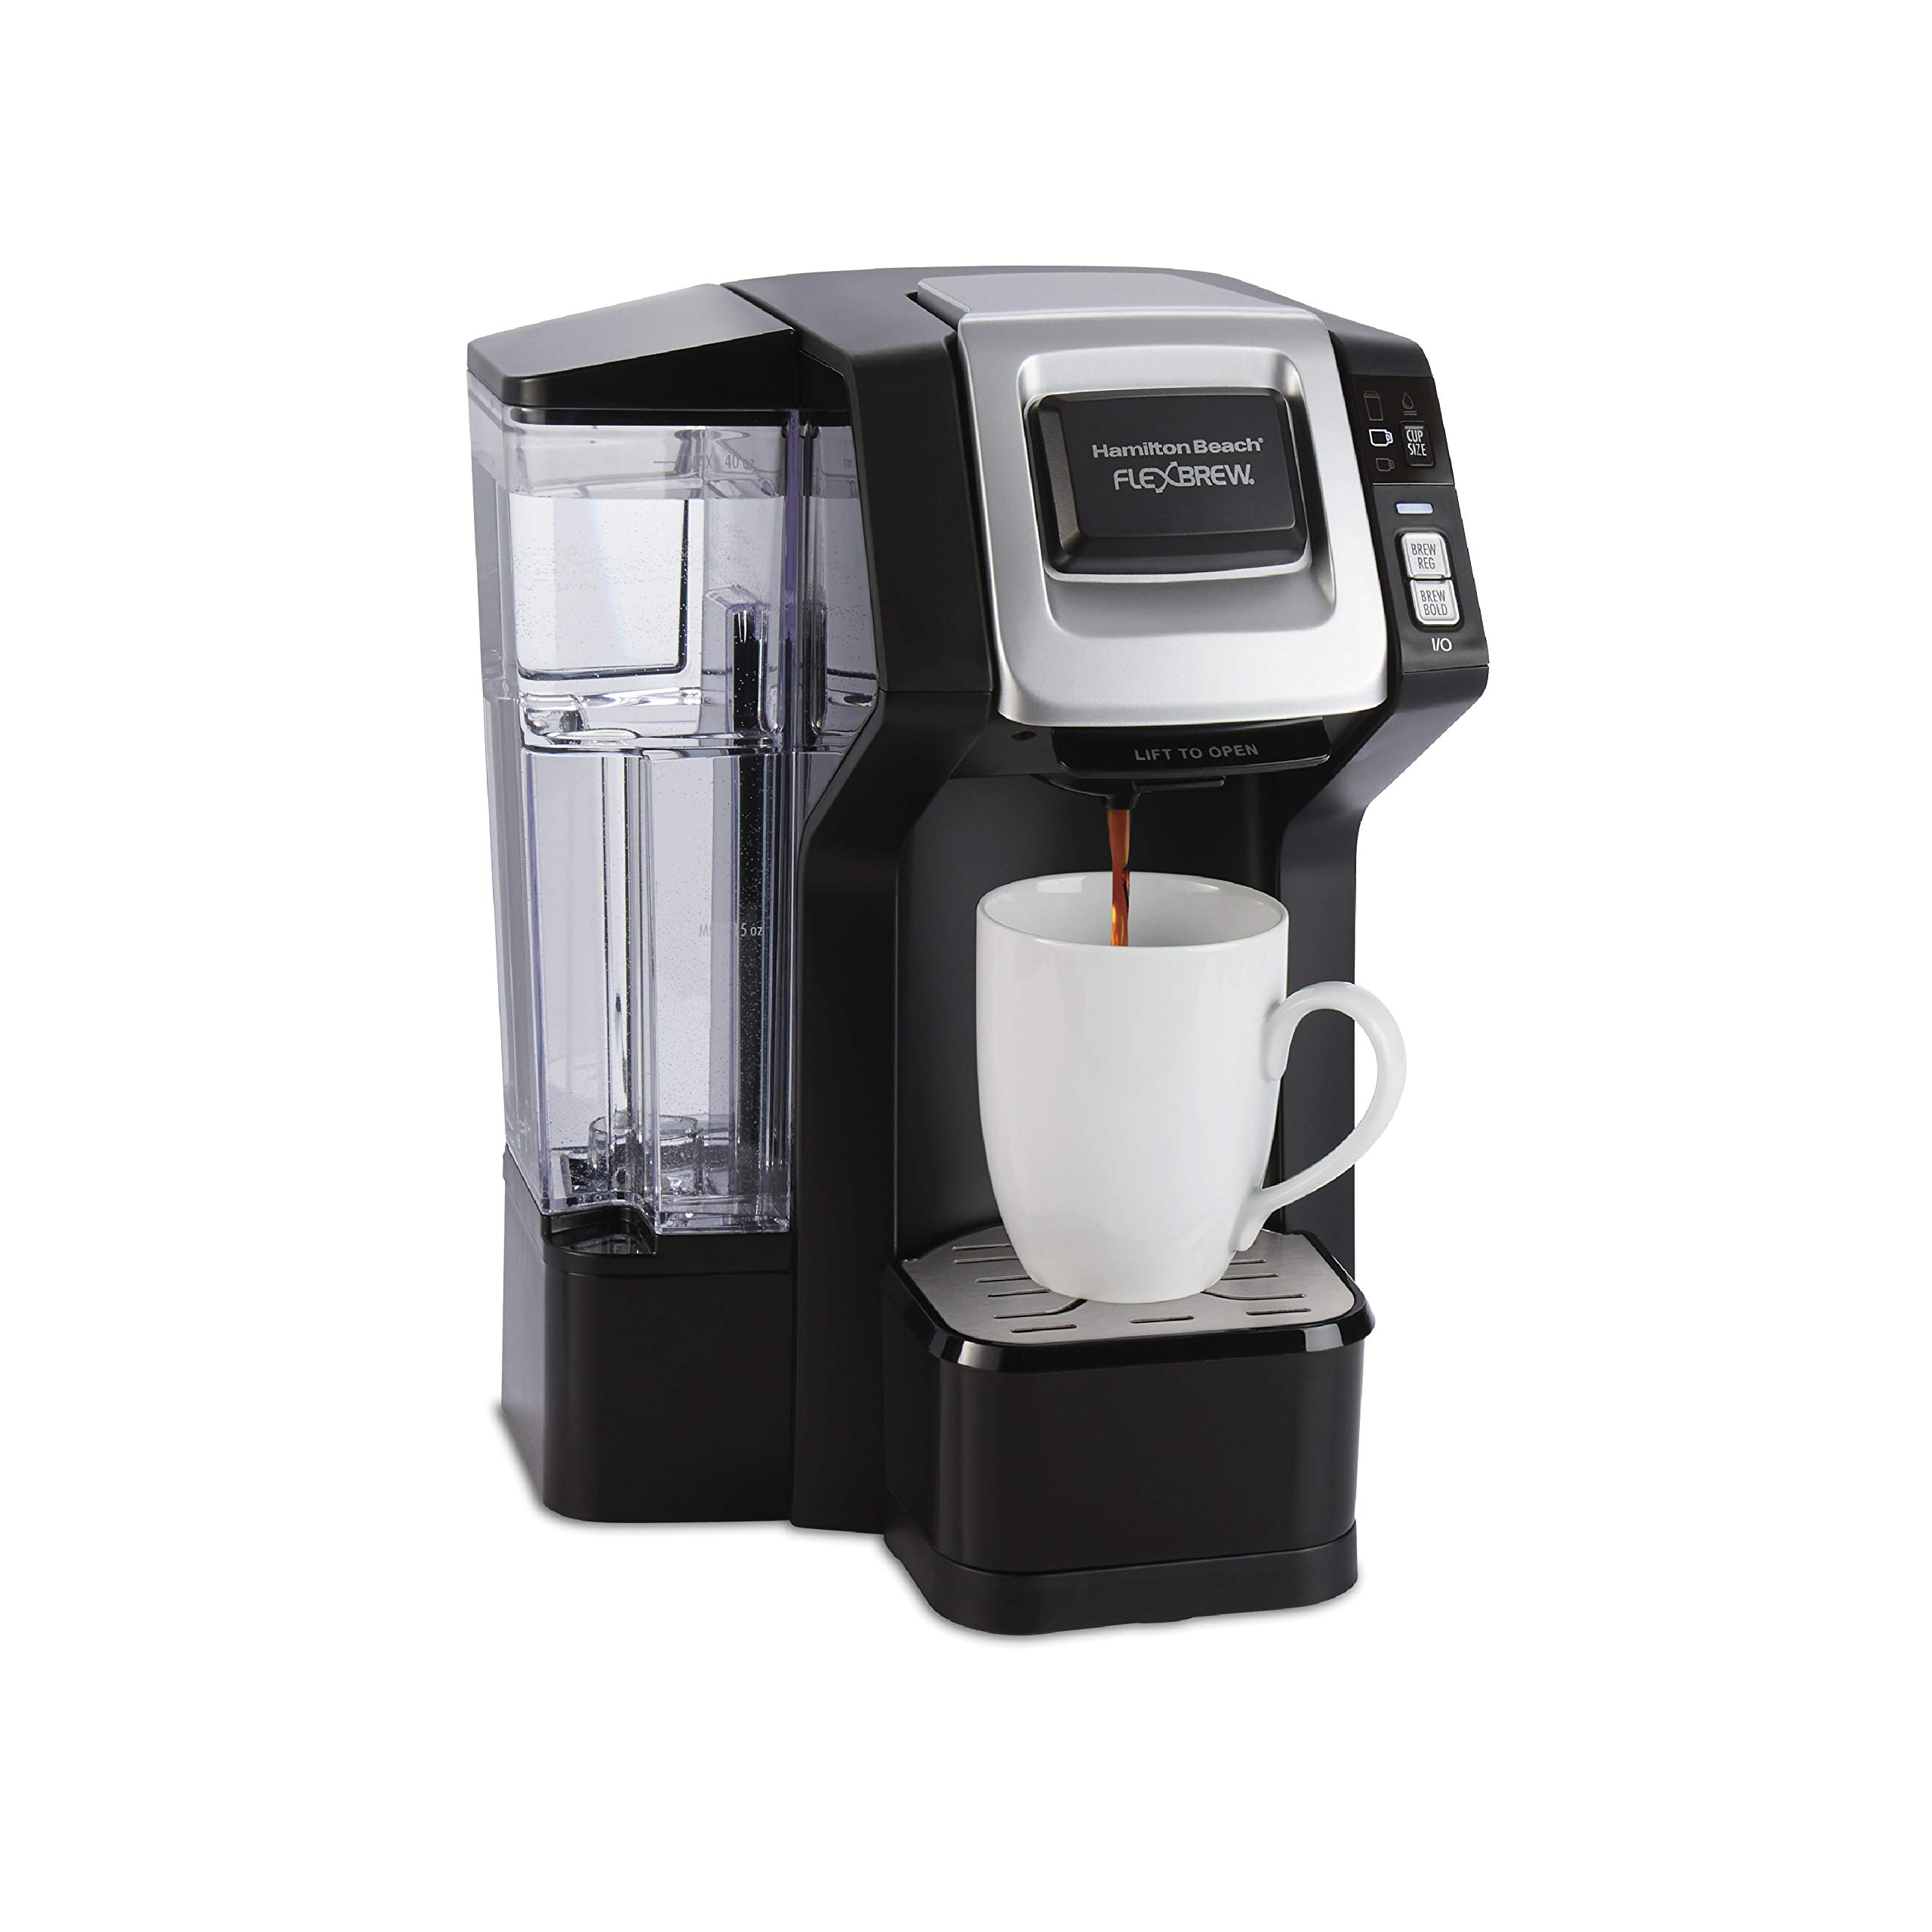 Hamilton Beach 49975 FlexBrew Single Serve Maker with with 40 oz. Reservoir, Compatible with K-Cup Packs or Ground Coffee, 3 Brewing Sizes, Black